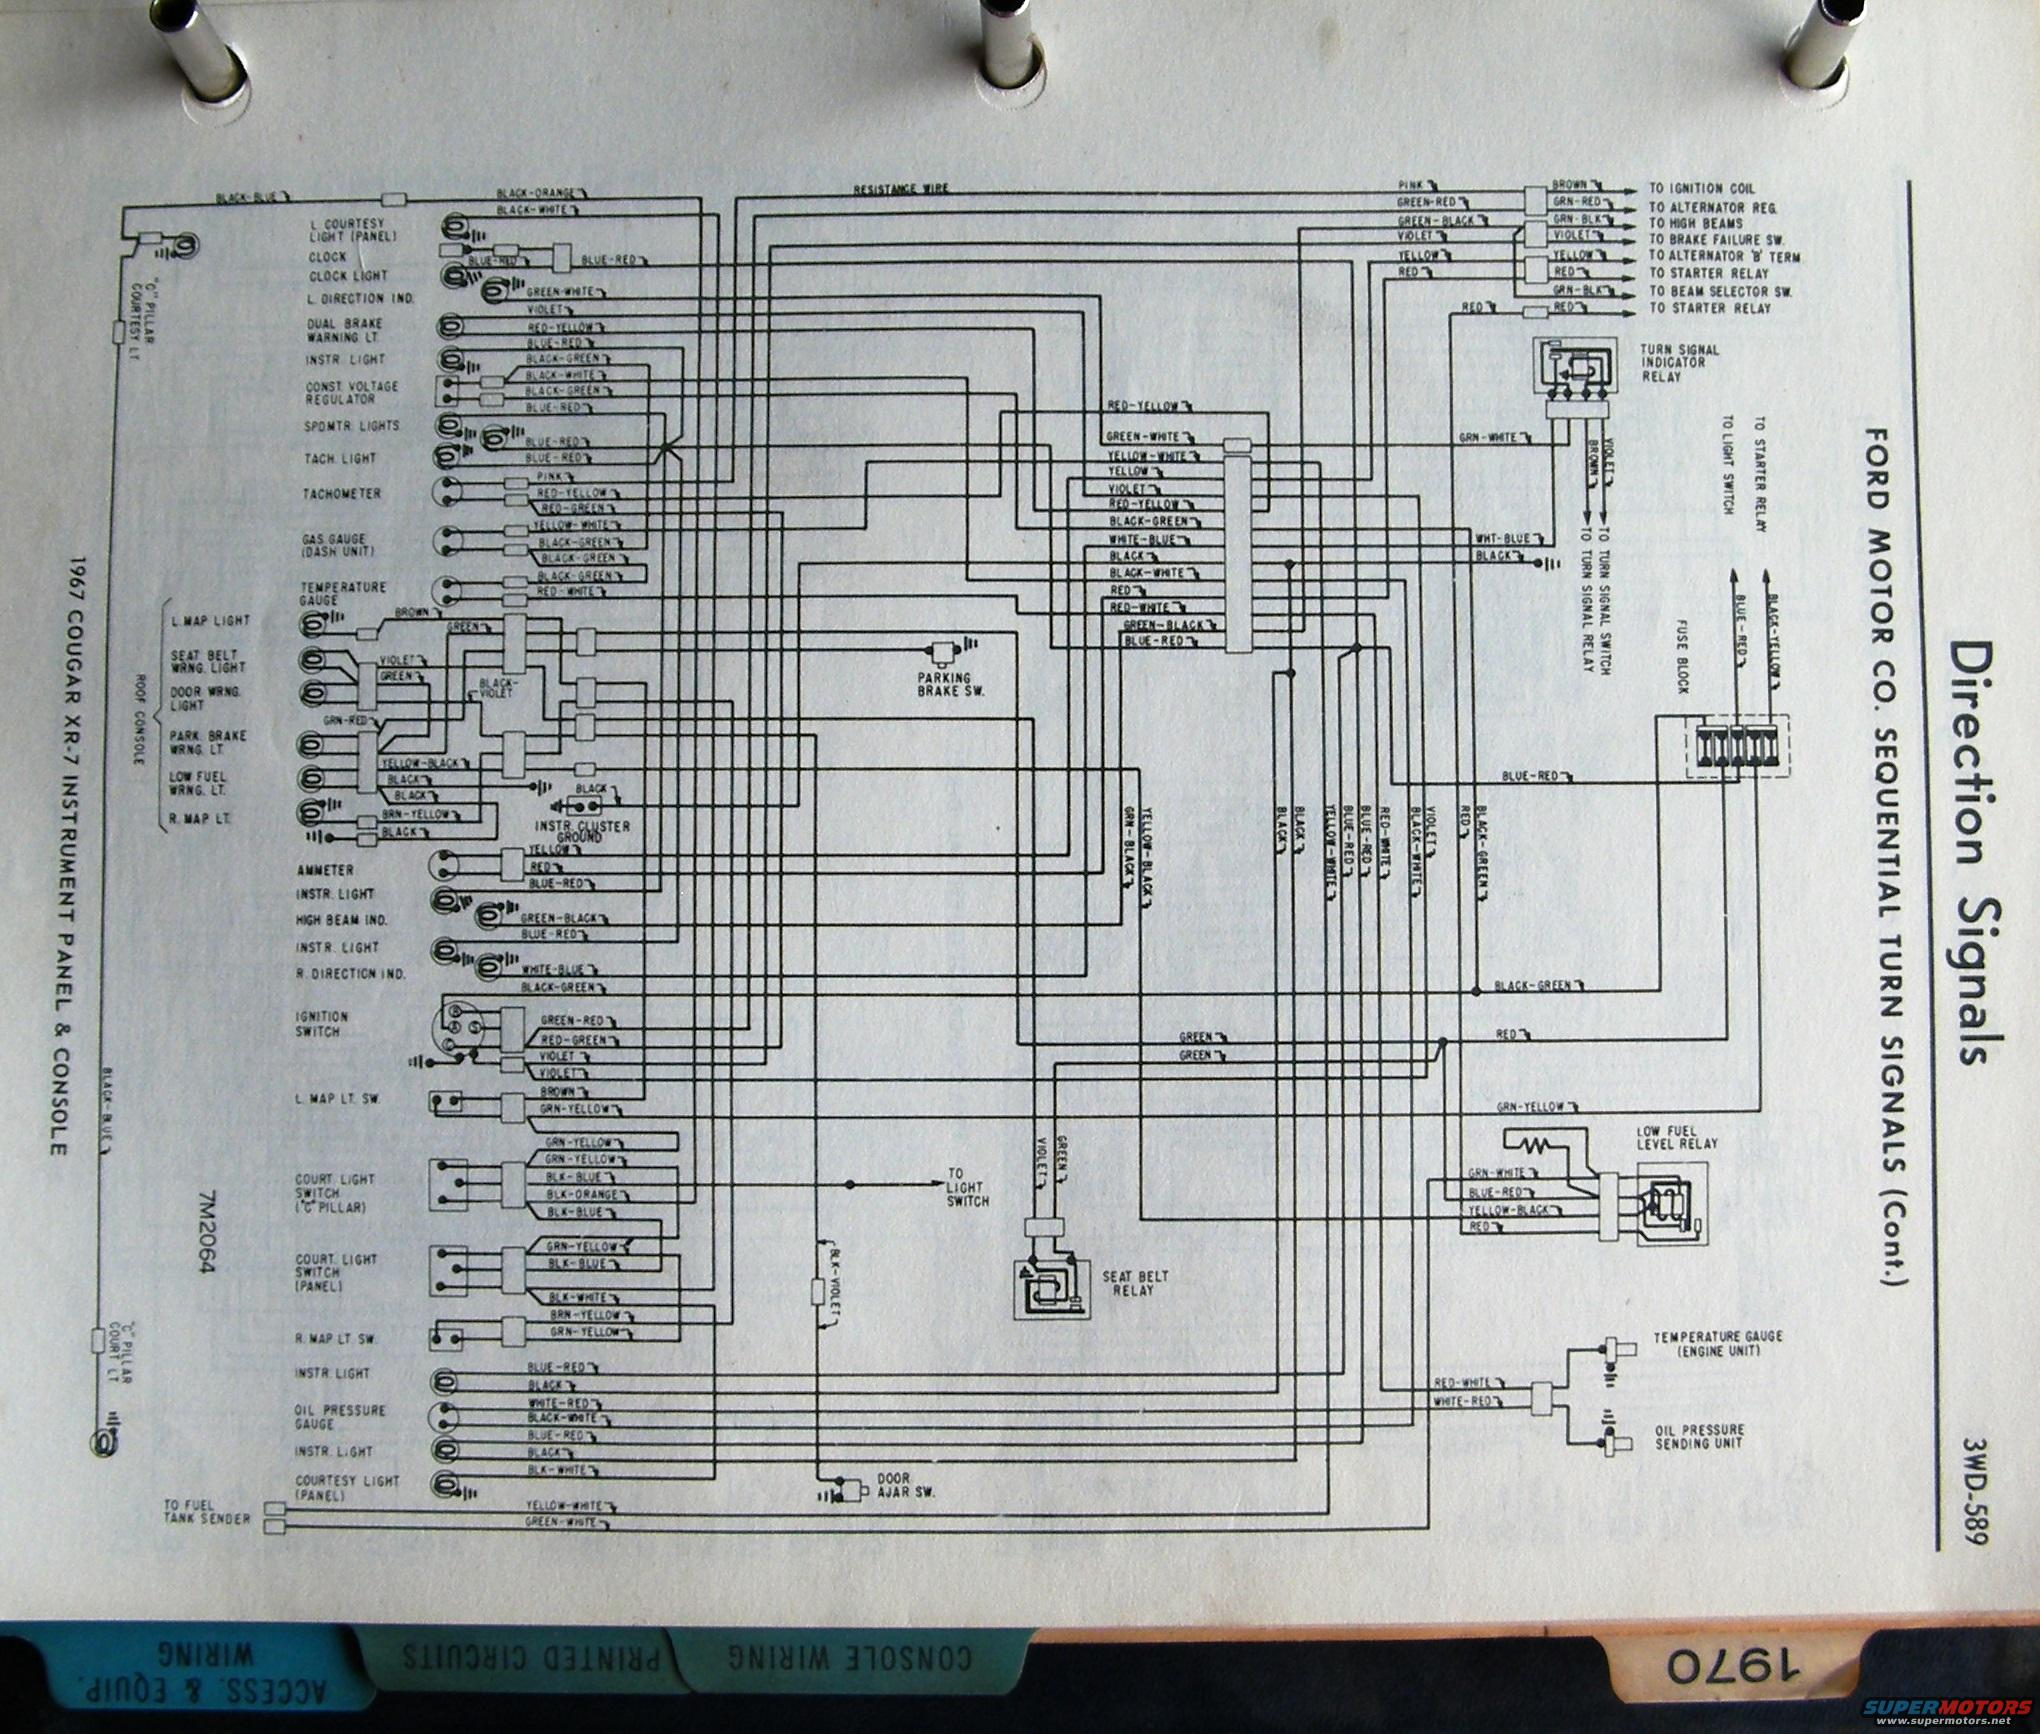 wiring diagram 1967 xr7 1968 cougar xr7 dash to headlights starter solenoid wire harness 2002 mercury cougar wiring diagram at honlapkeszites.co